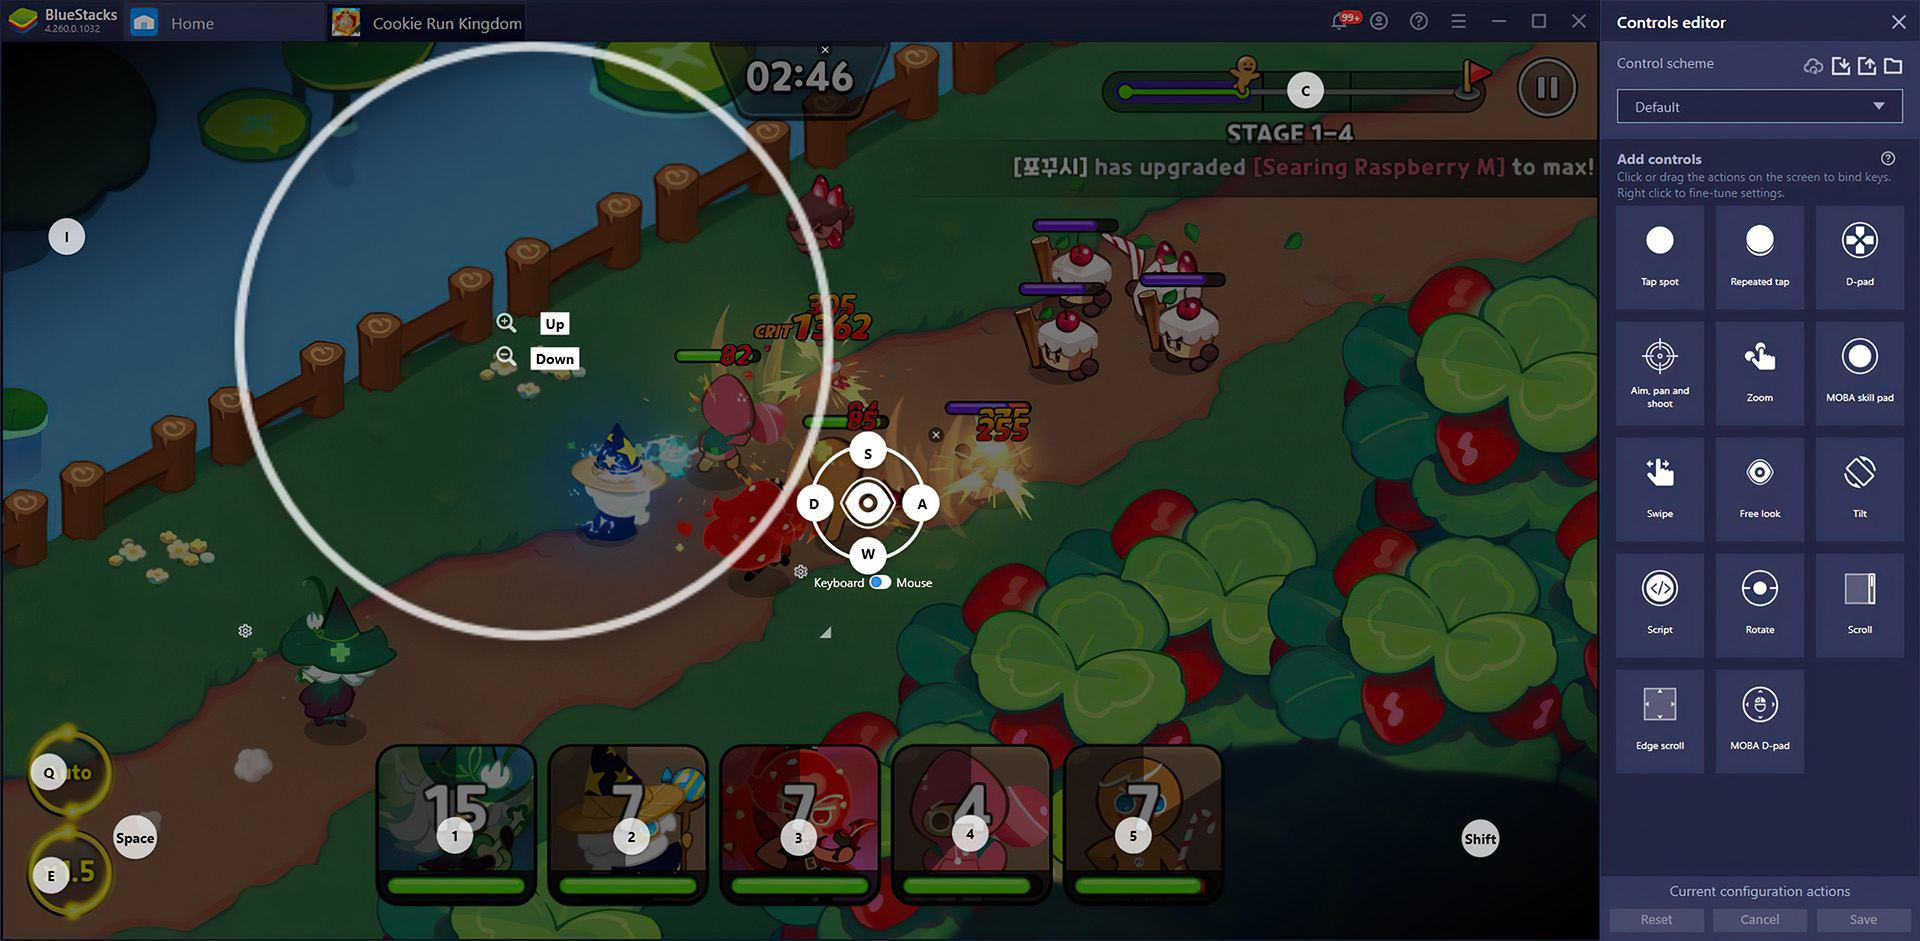 BlueStacks 4 Recap – What Have We Been Up to Since the Launch?